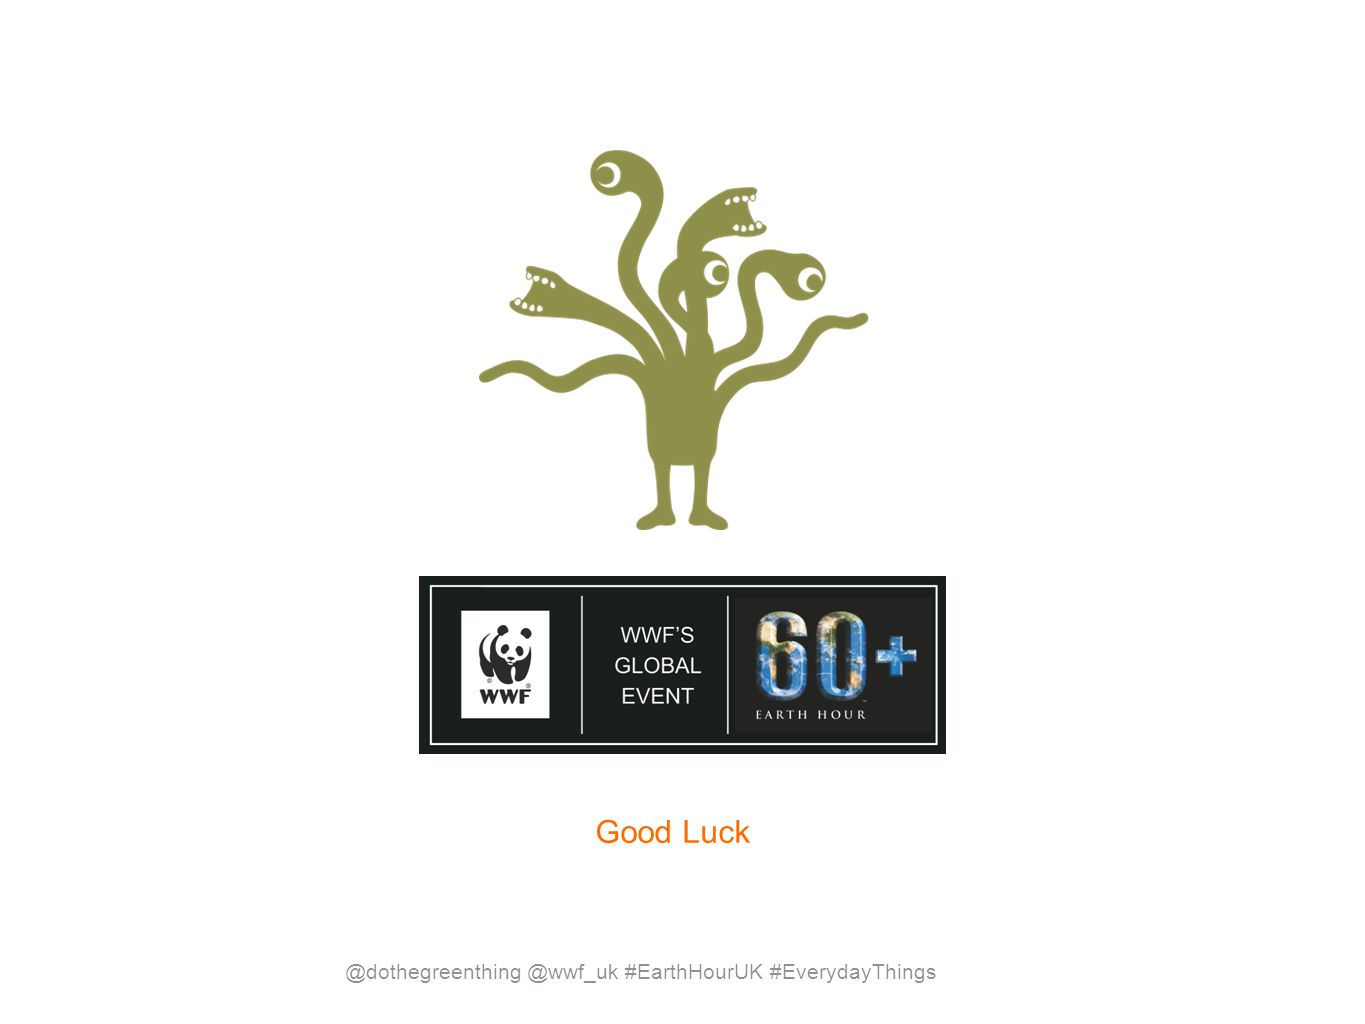 @dothegreenthing @wwf_uk #EarthHourUK #EverydayThings Good Luck